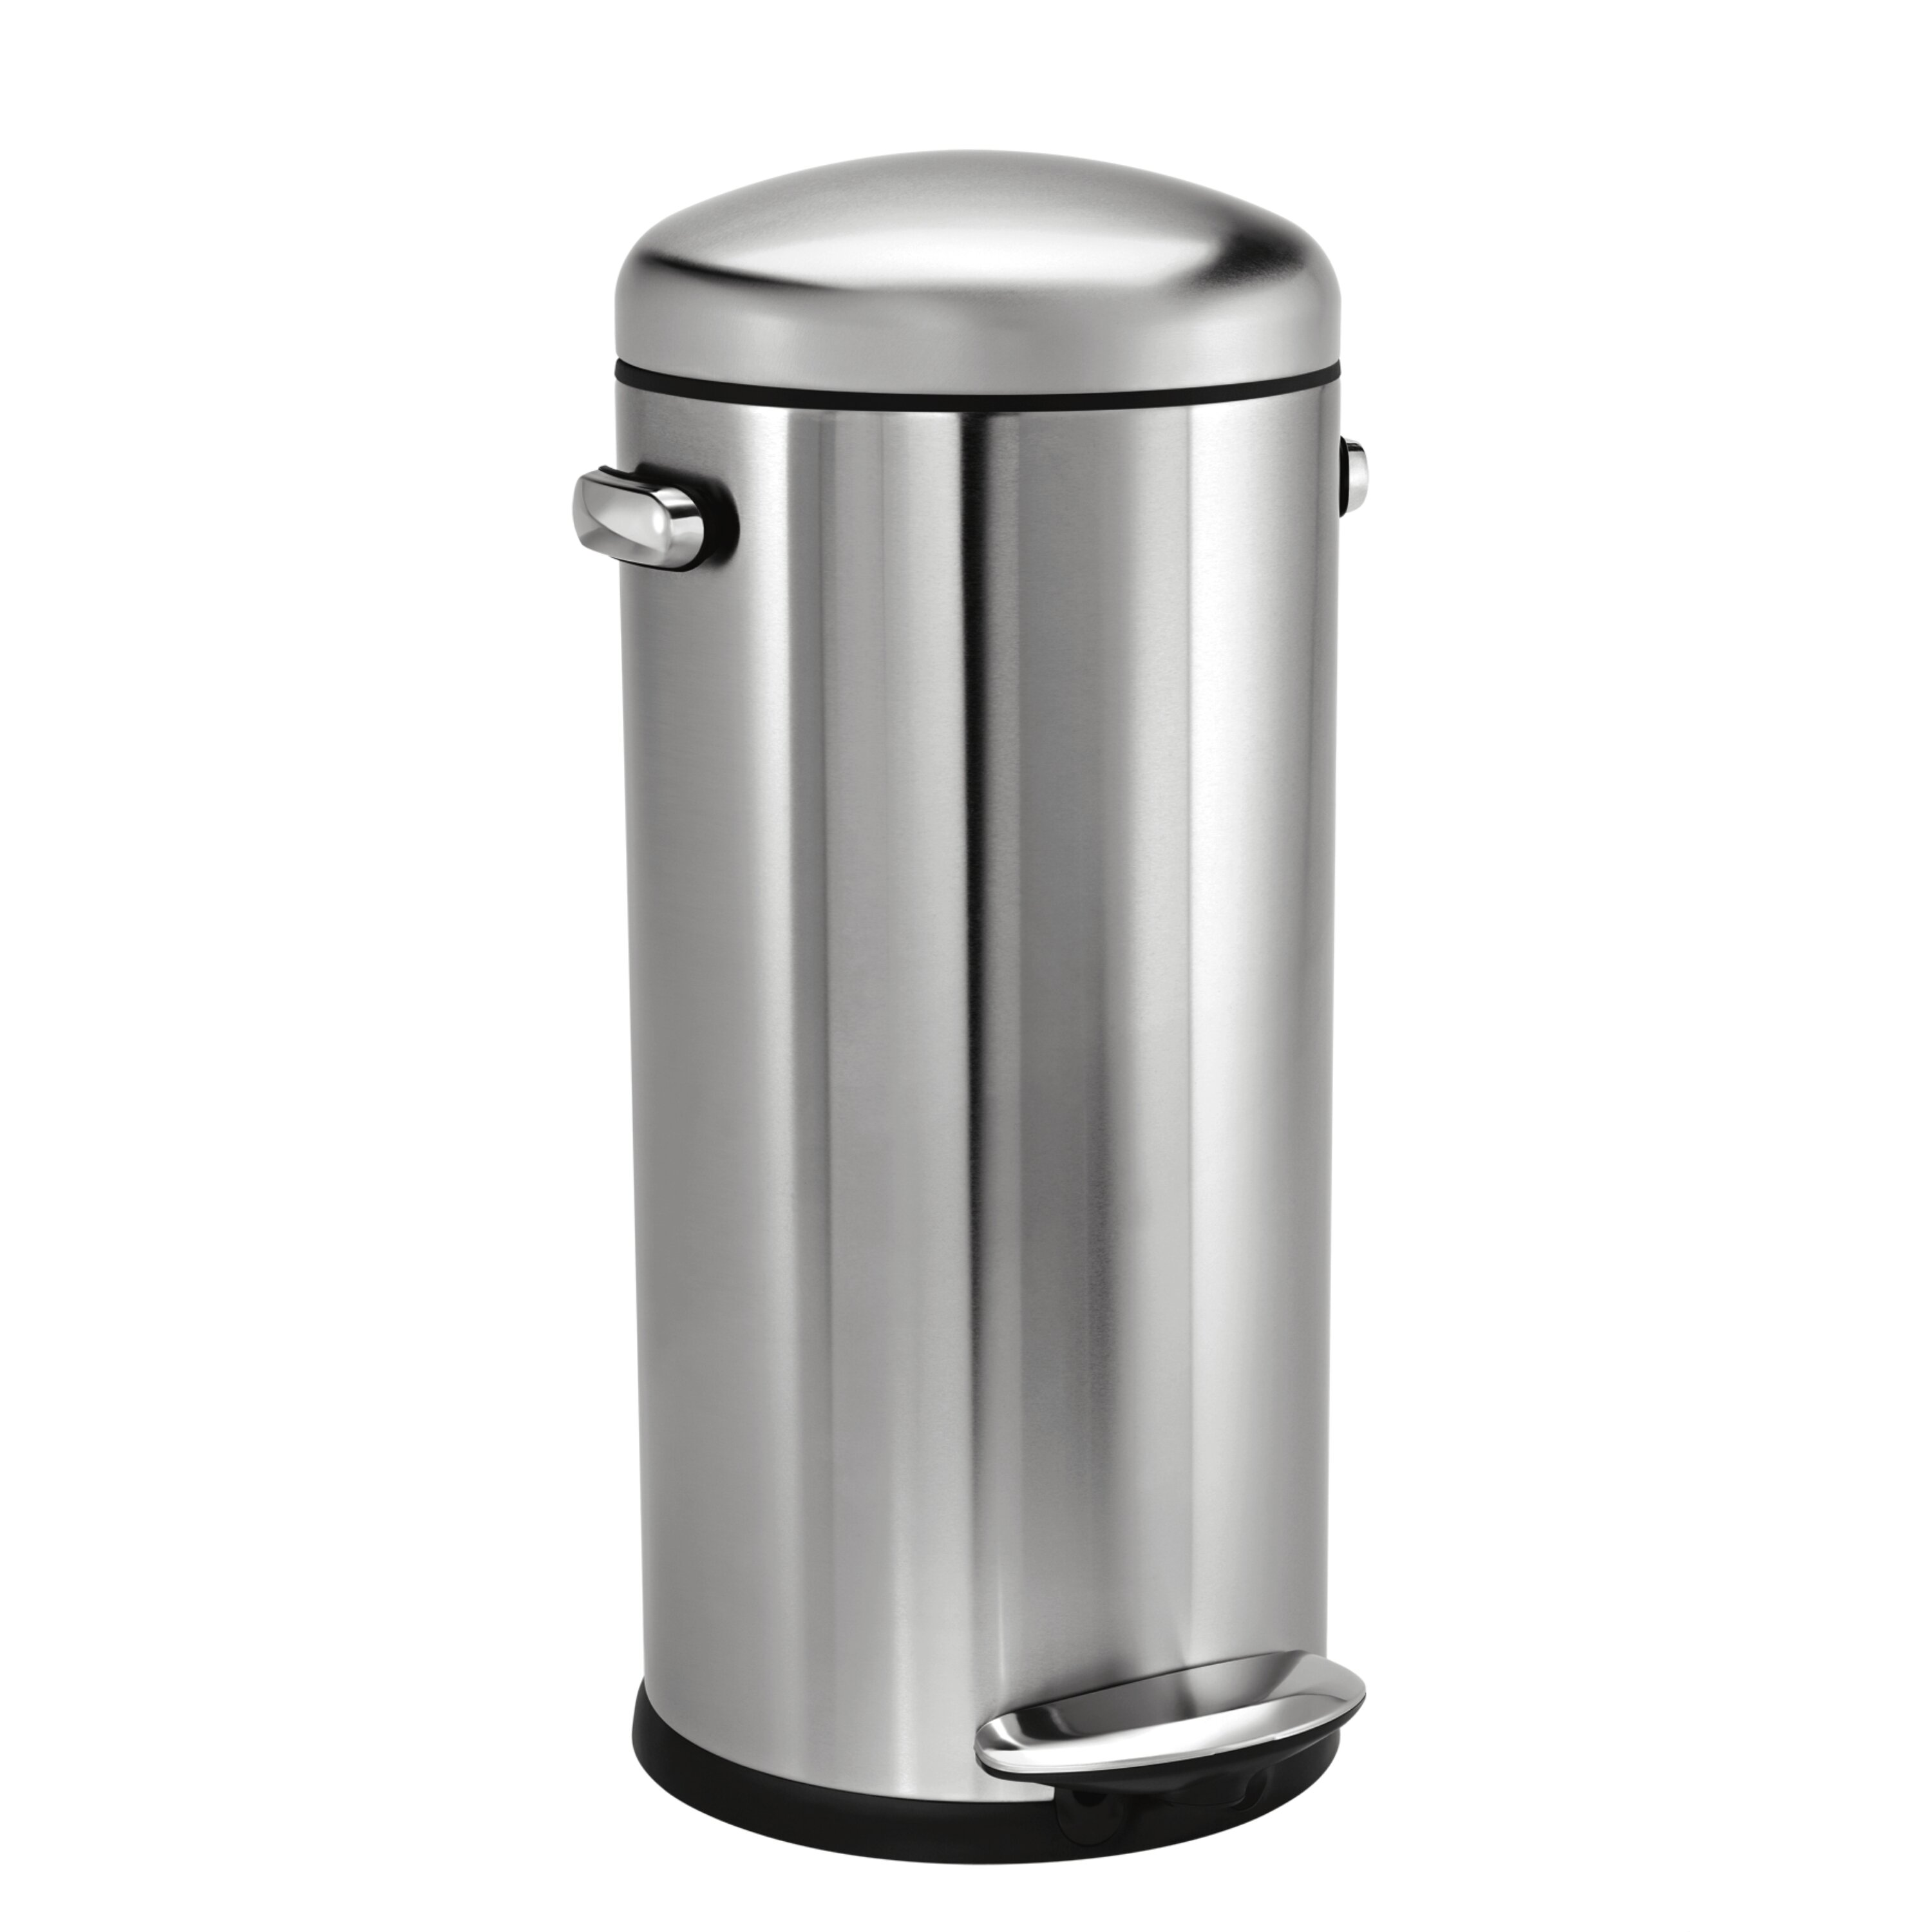 simplehuman 7 9 gal retro step trash can wayfair. Black Bedroom Furniture Sets. Home Design Ideas